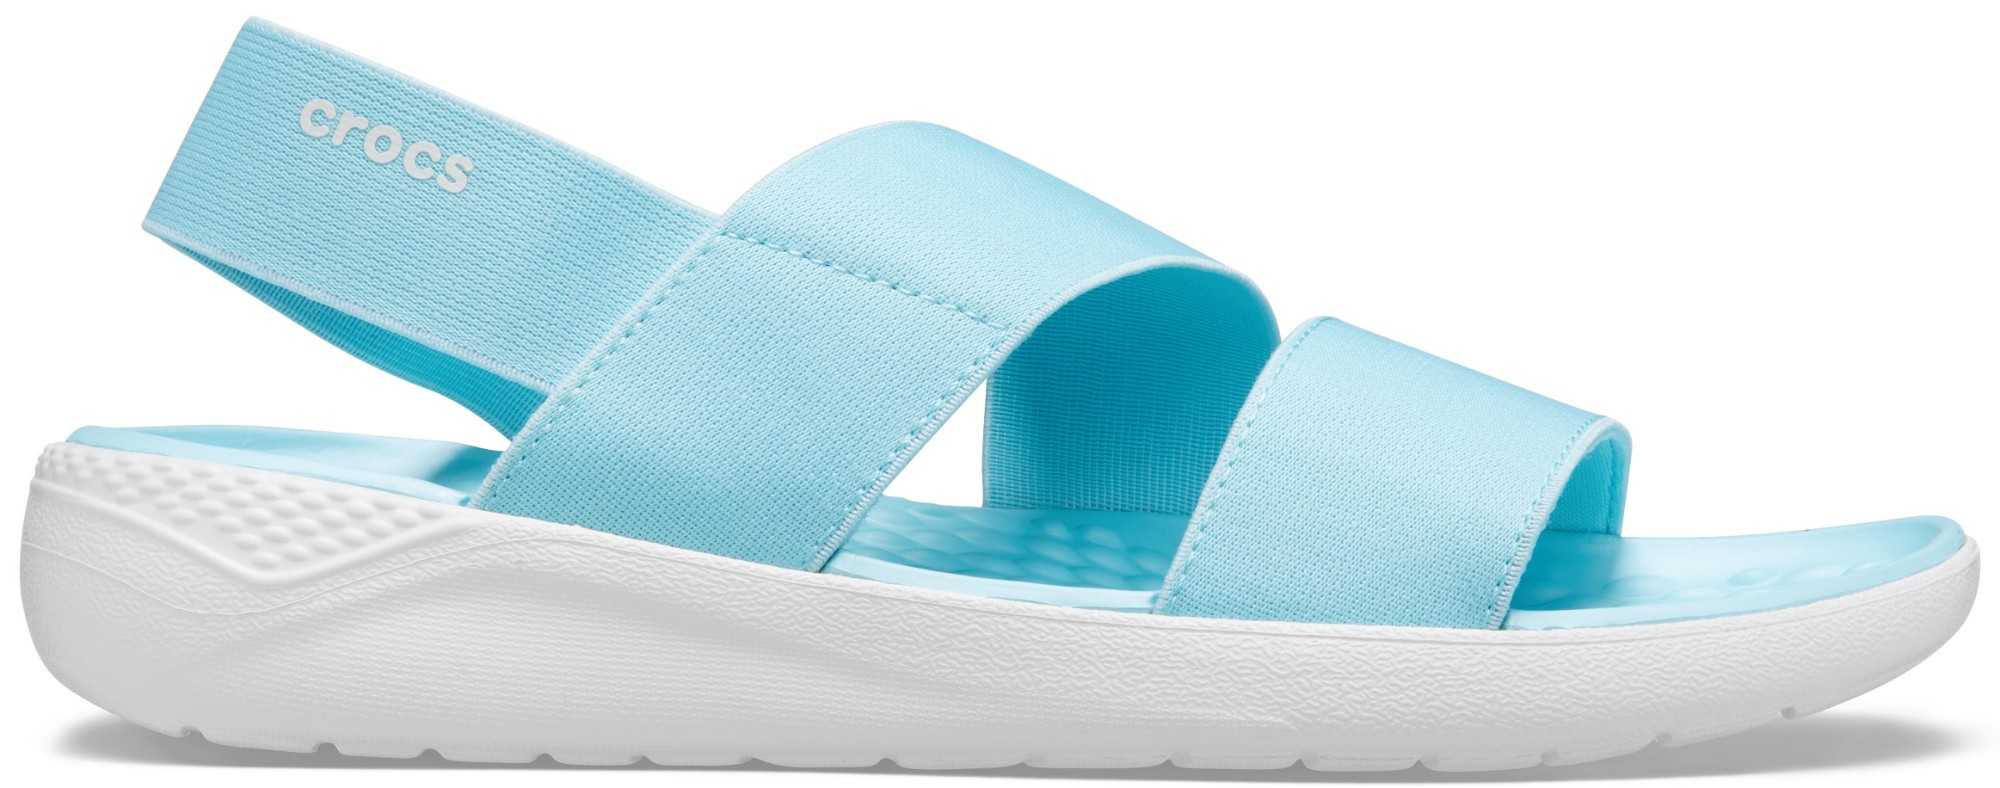 Crocs™ Literide Stretch Sandal Womens Ice Blue/Almost White 37,5